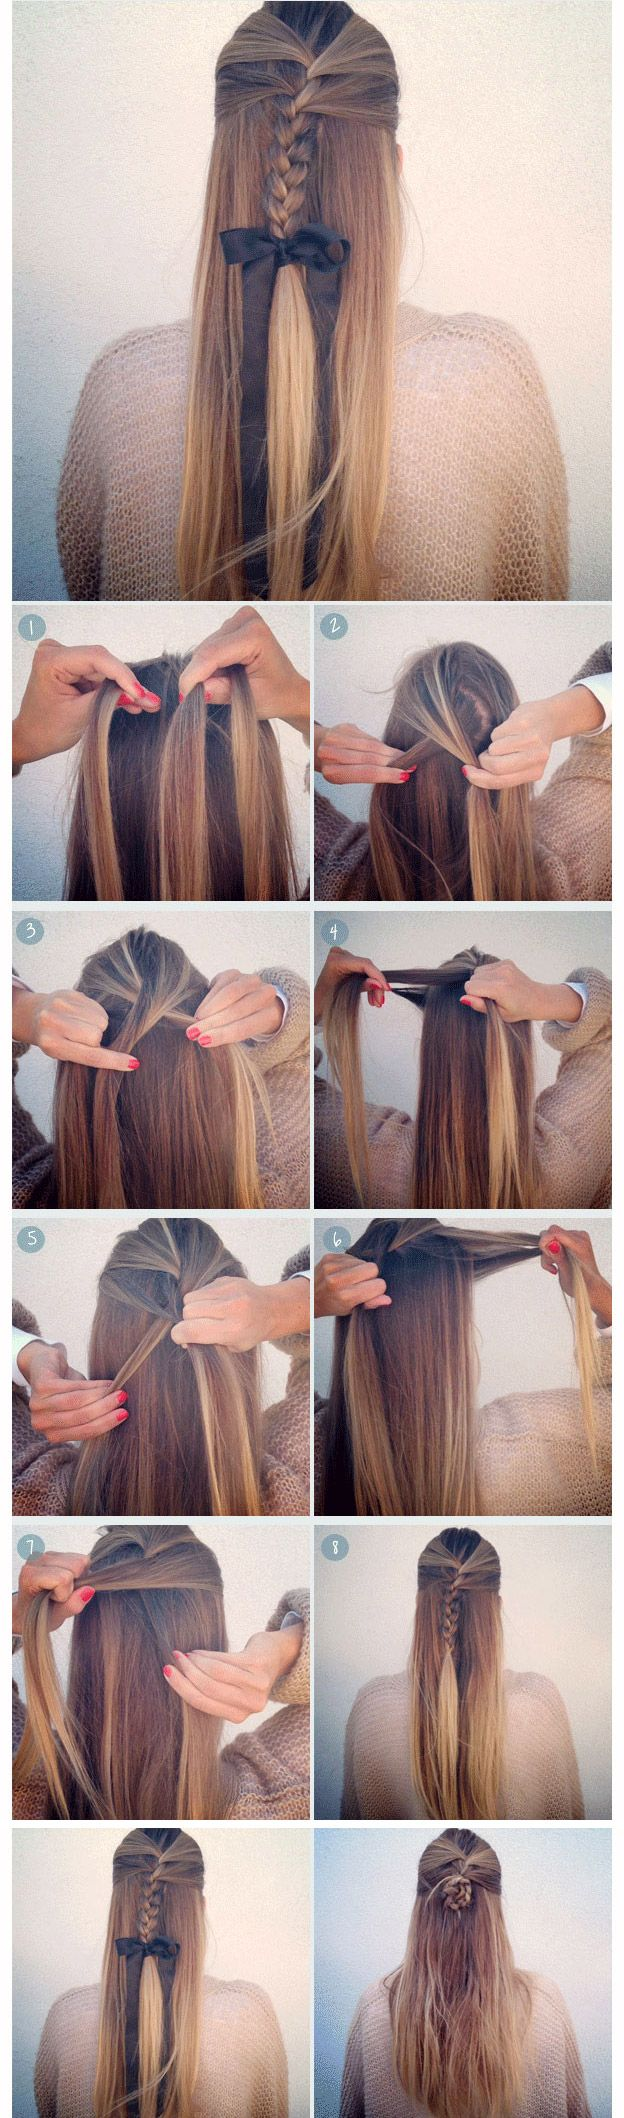 5 Easy Back-to-School Hairstyles for Long Medium Hair Tutorial